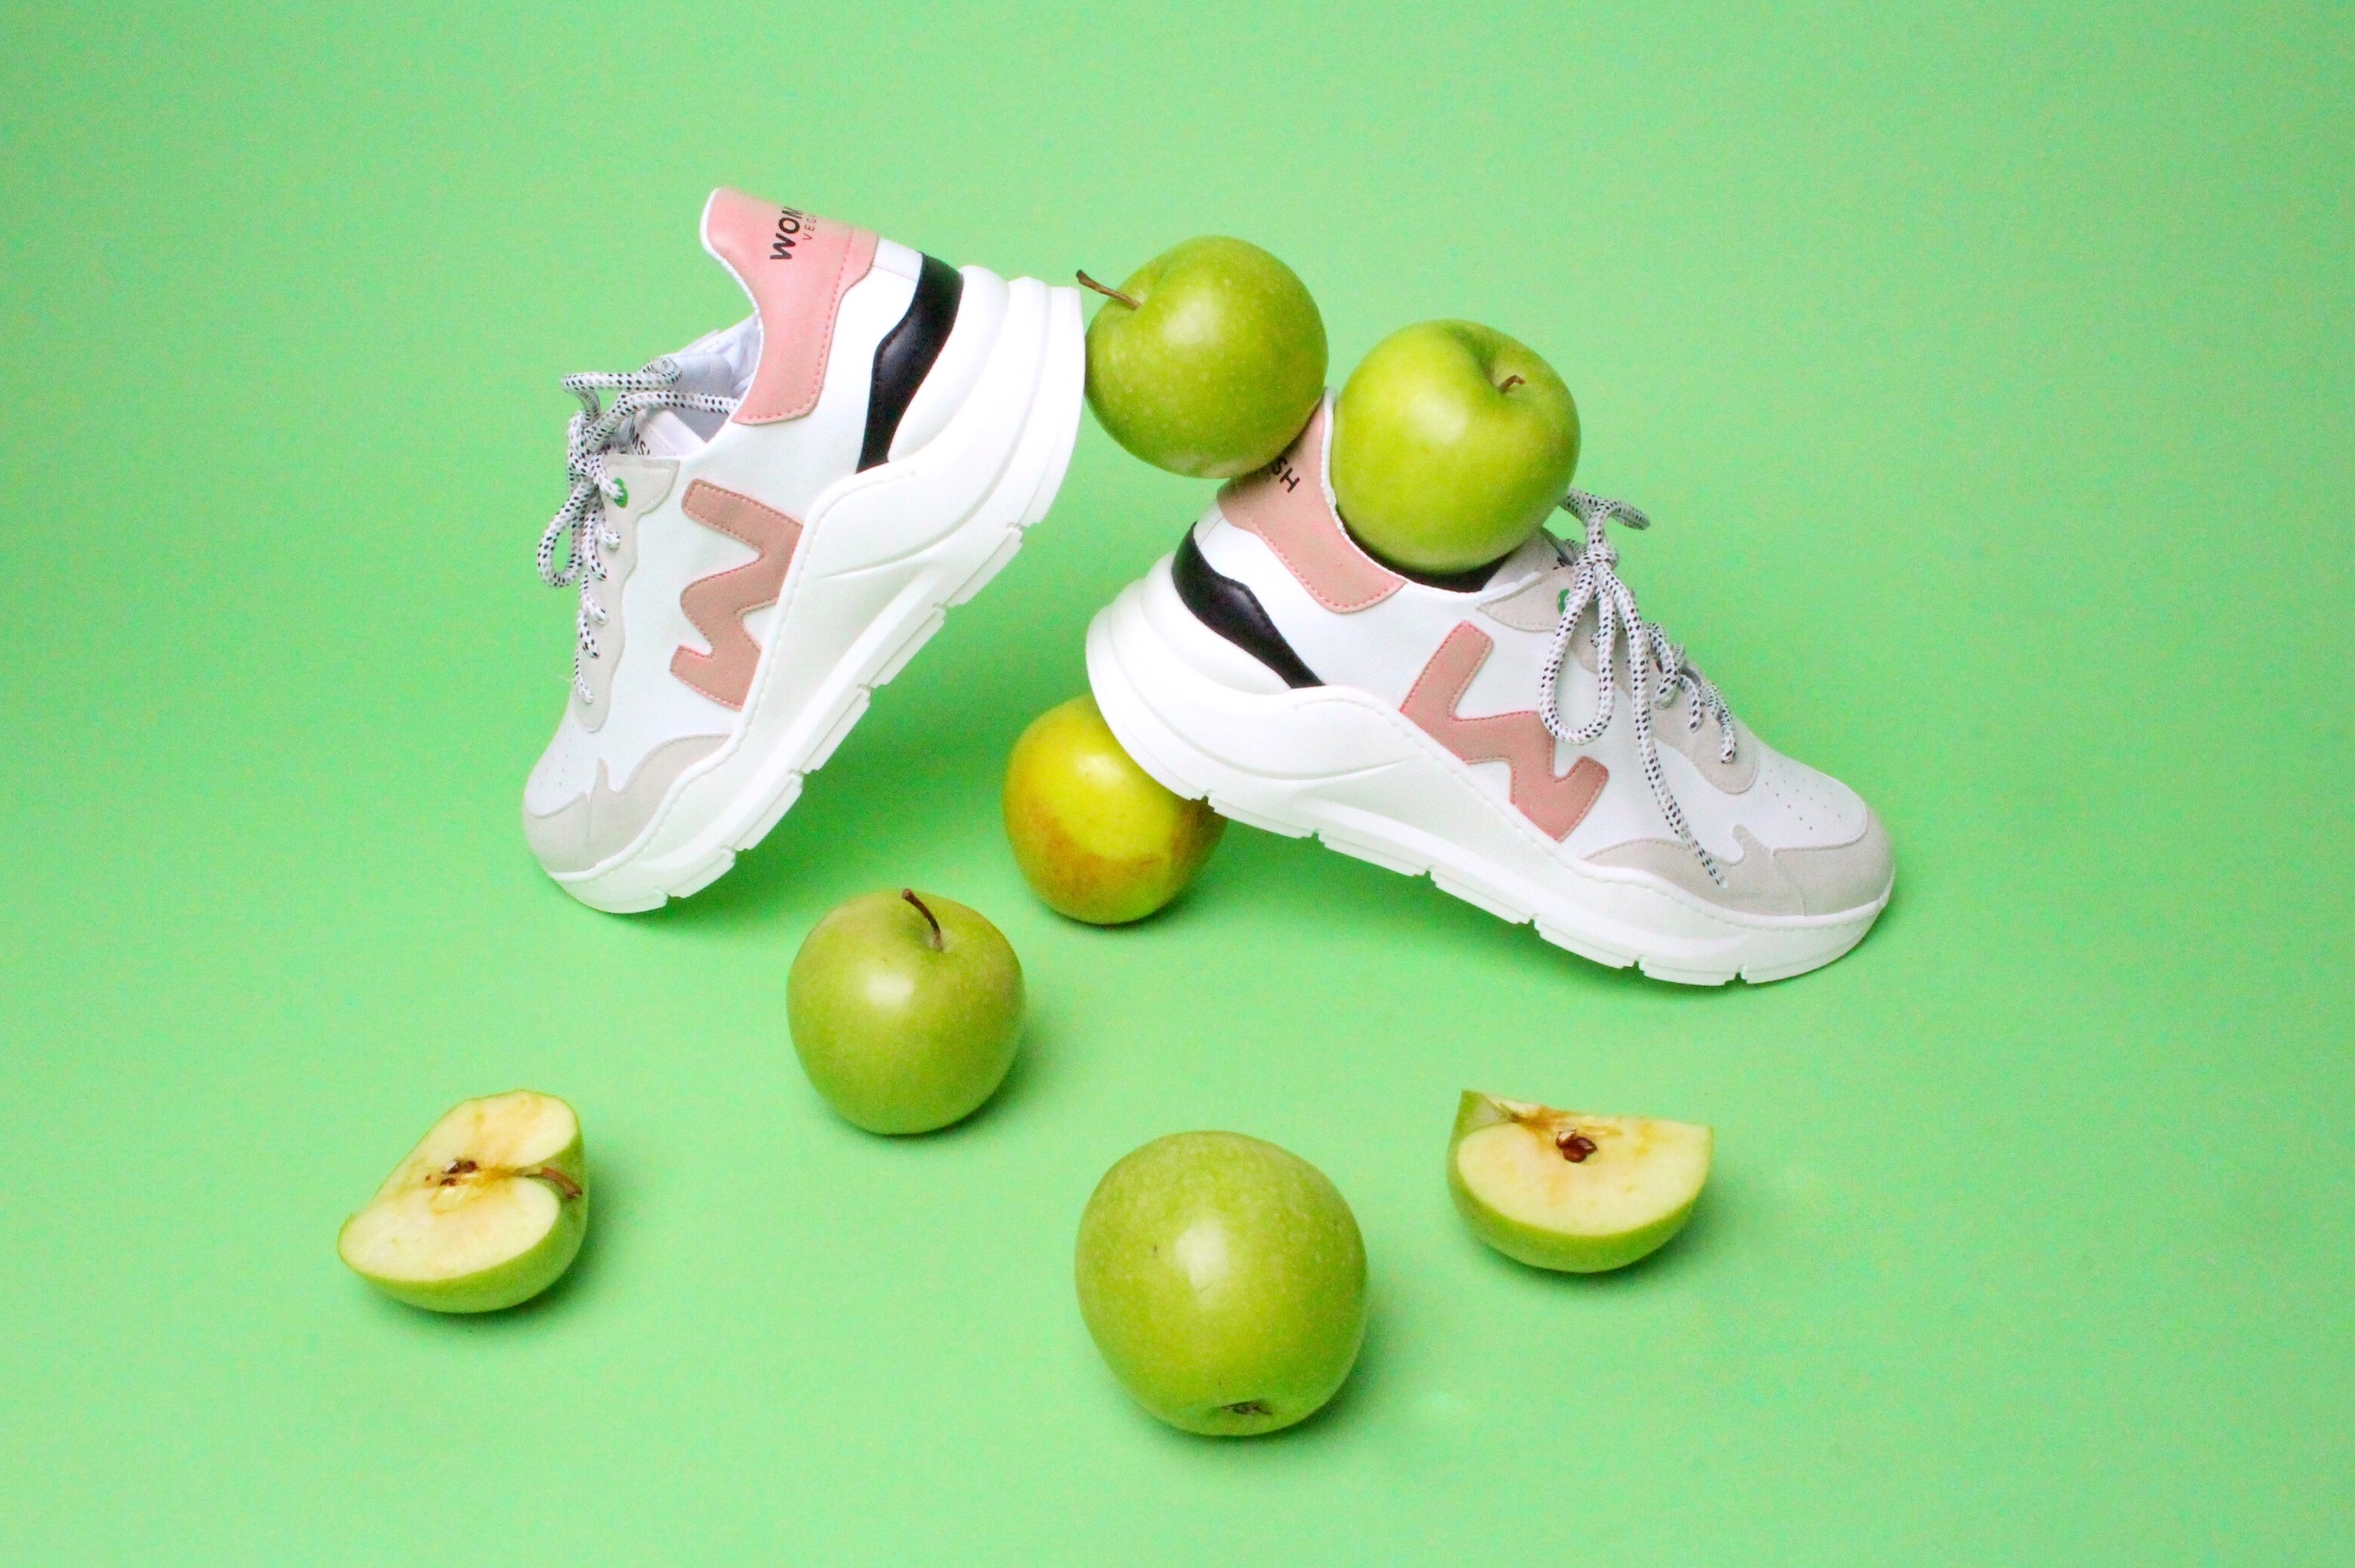 Sustainable Sneakers Brand Introduces Vegan Line Made From Apple